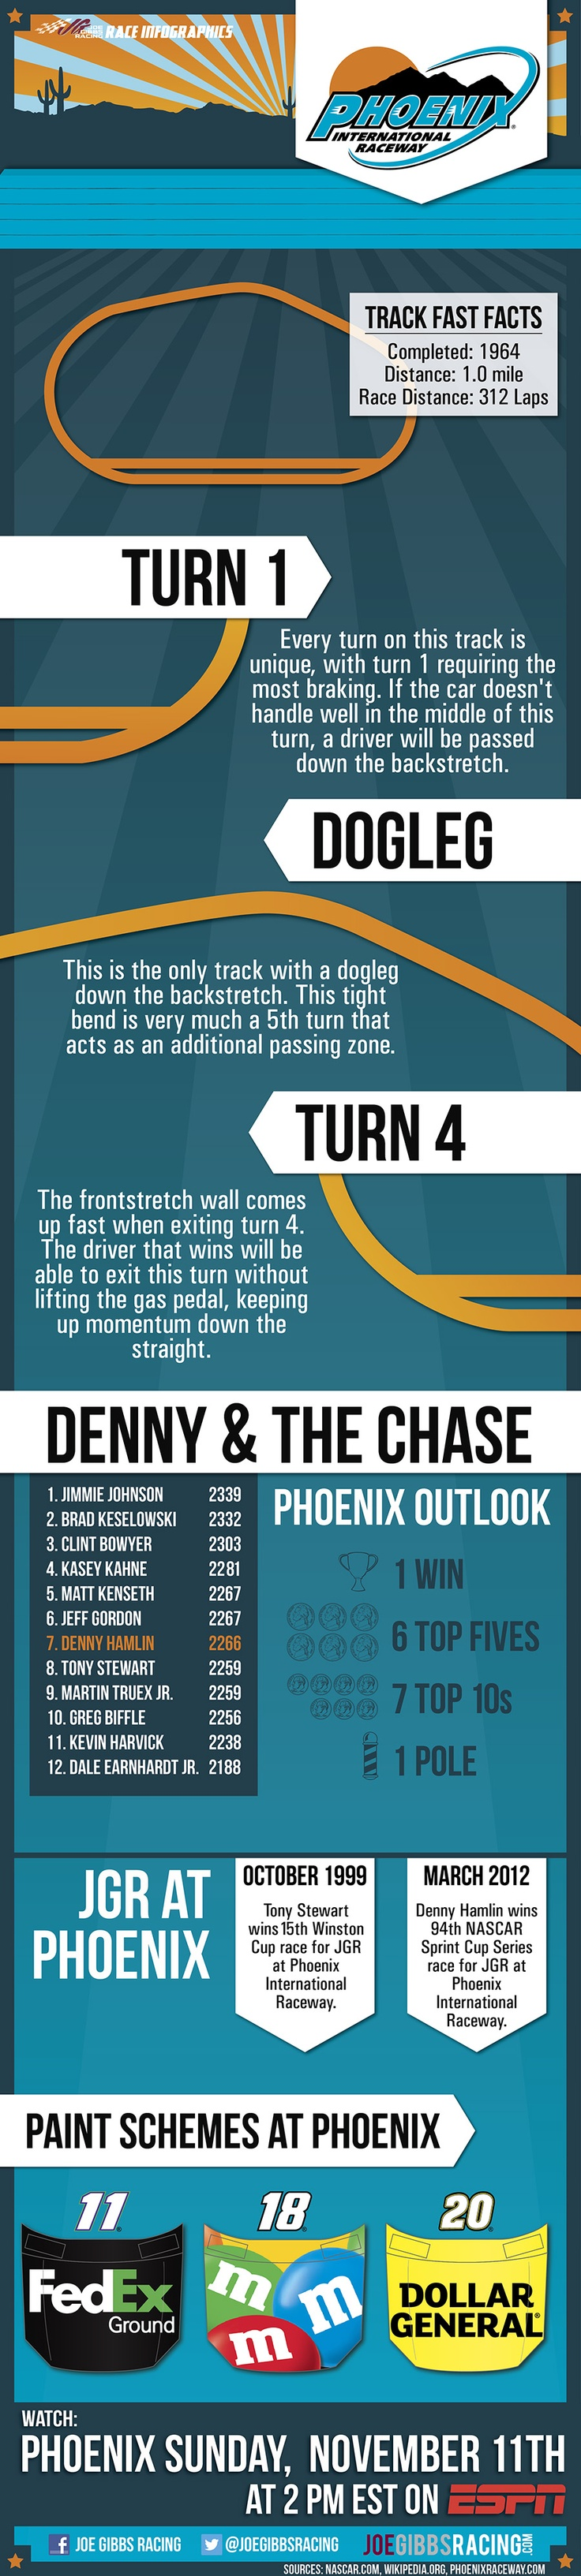 You'll love our #NASCAR infographic for this weekend's race @PhoenixRaceway! Get up-to-speed.